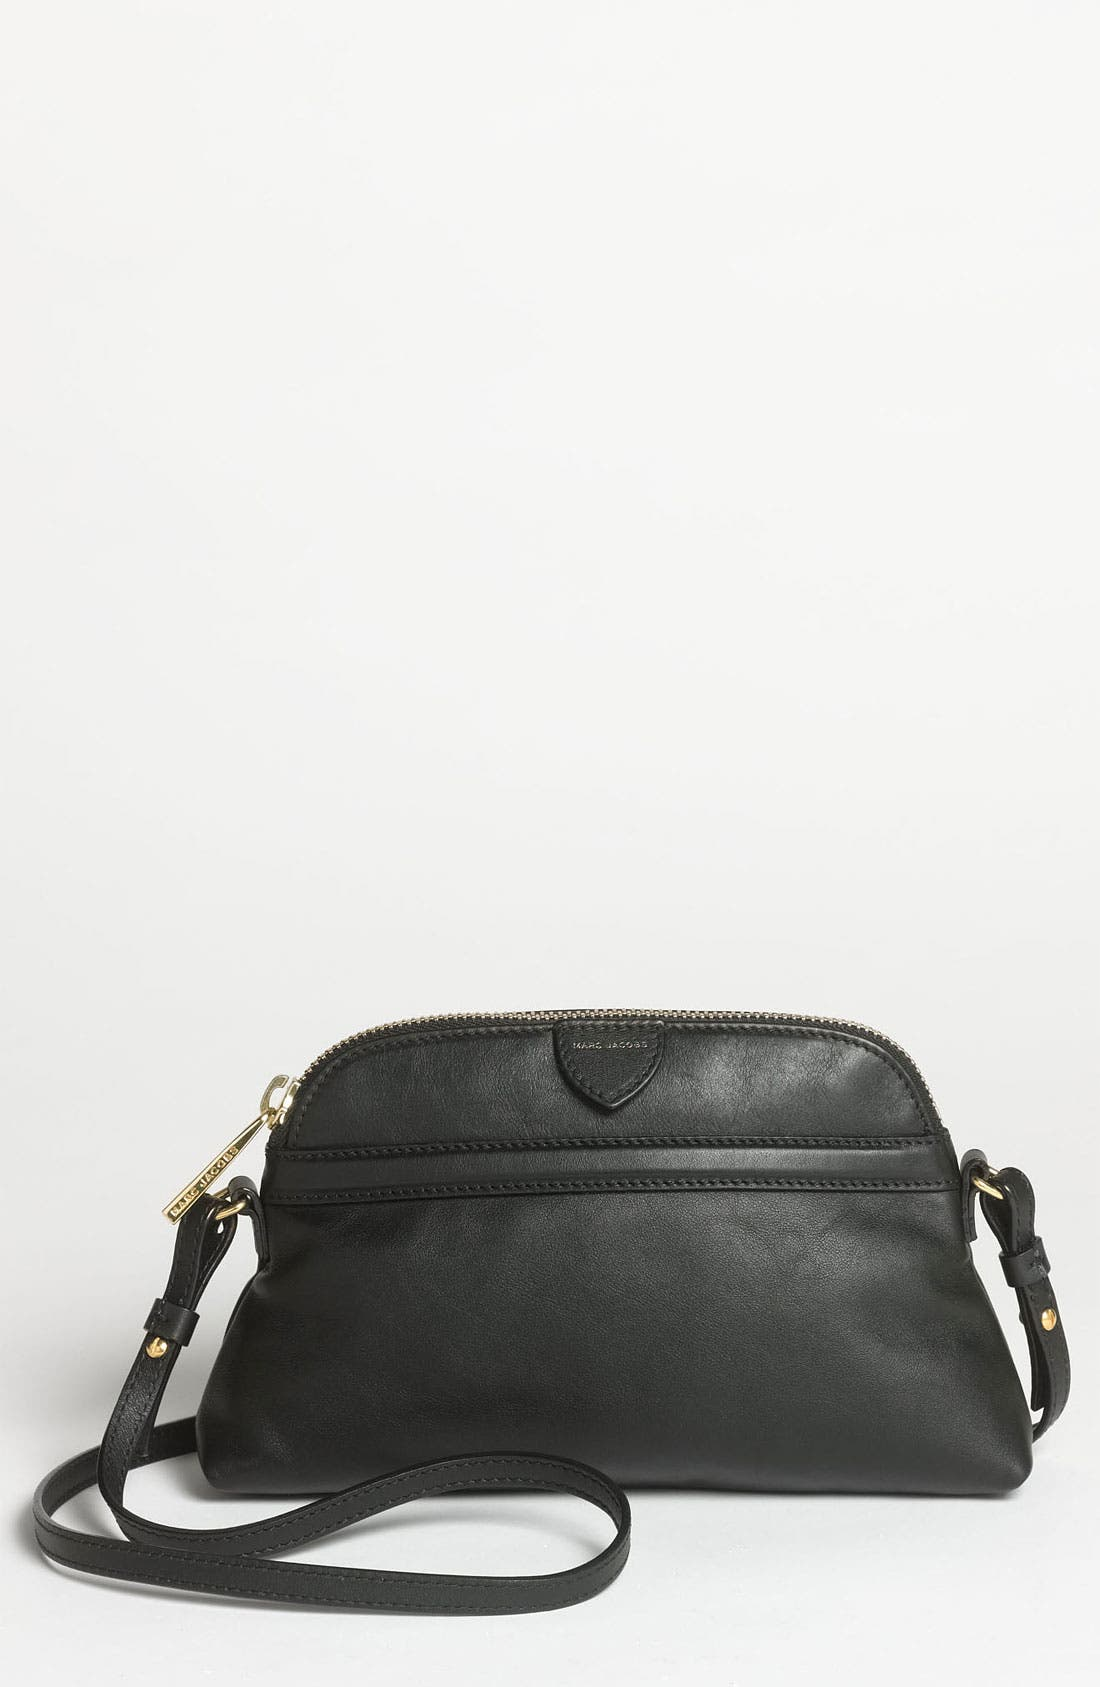 Alternate Image 1 Selected - MARC JACOBS 'Raleigh Sweetie' Convertible Leather Crossbody Bag